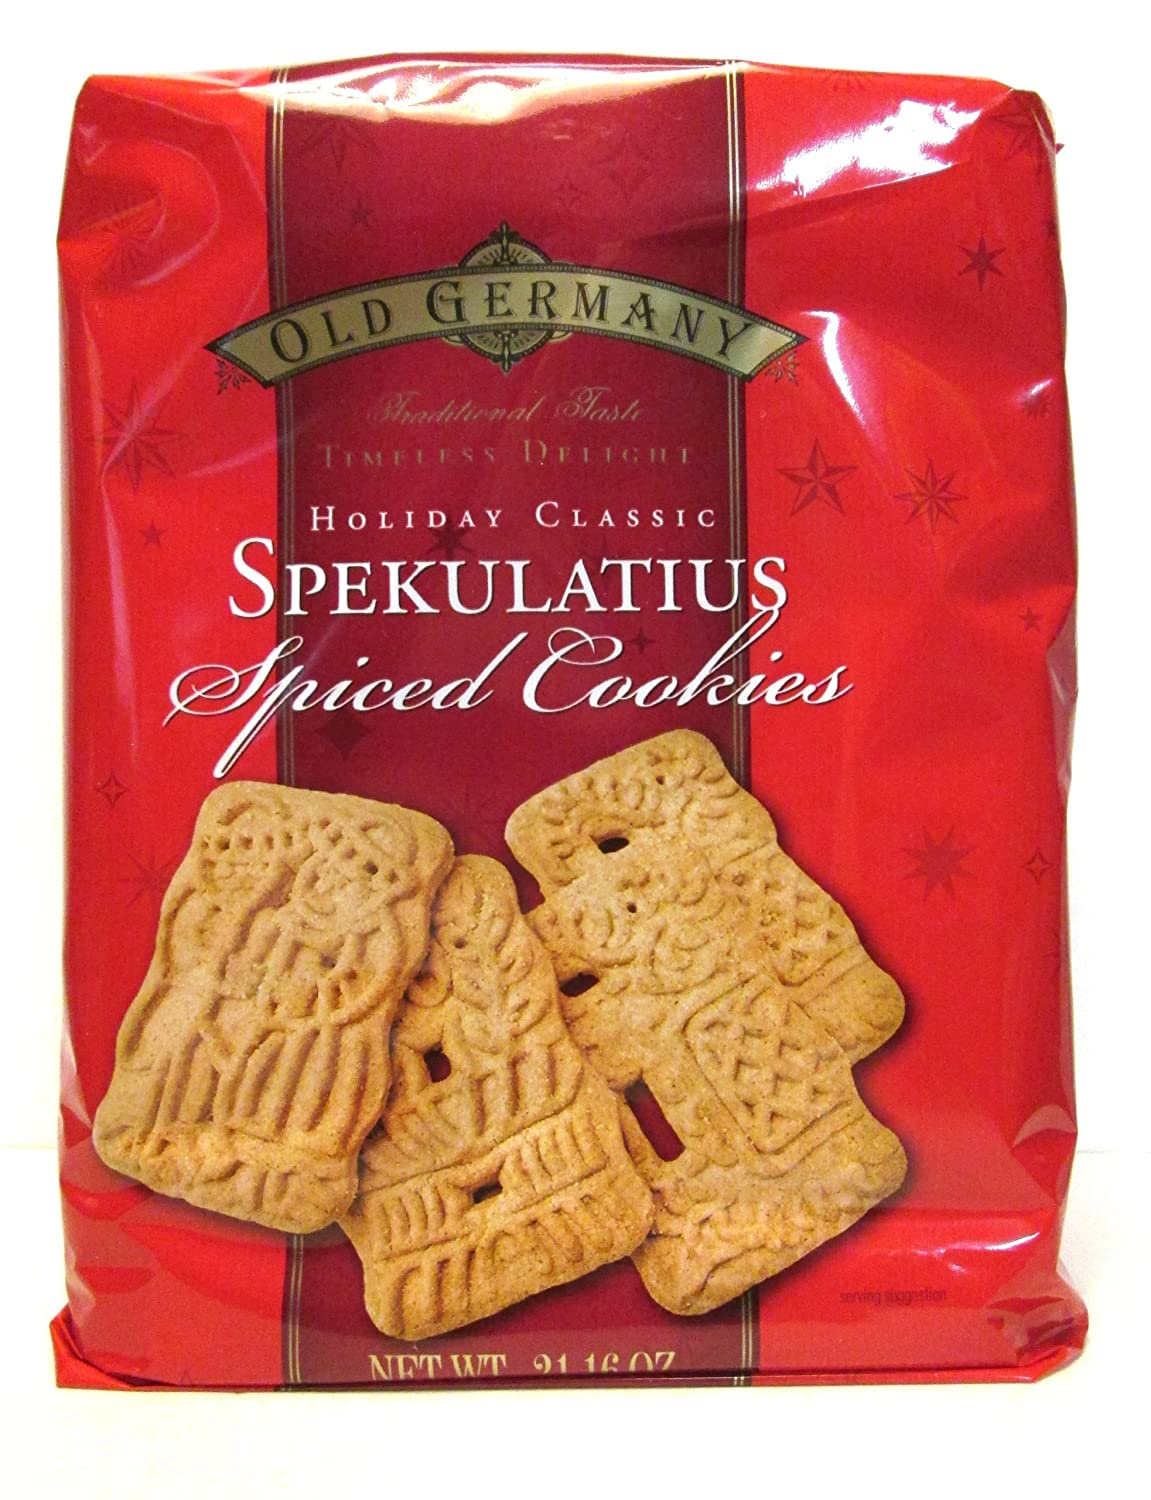 Old Germany Holiday Classic Spekulatius Spiced Cookies 21 16 Oz